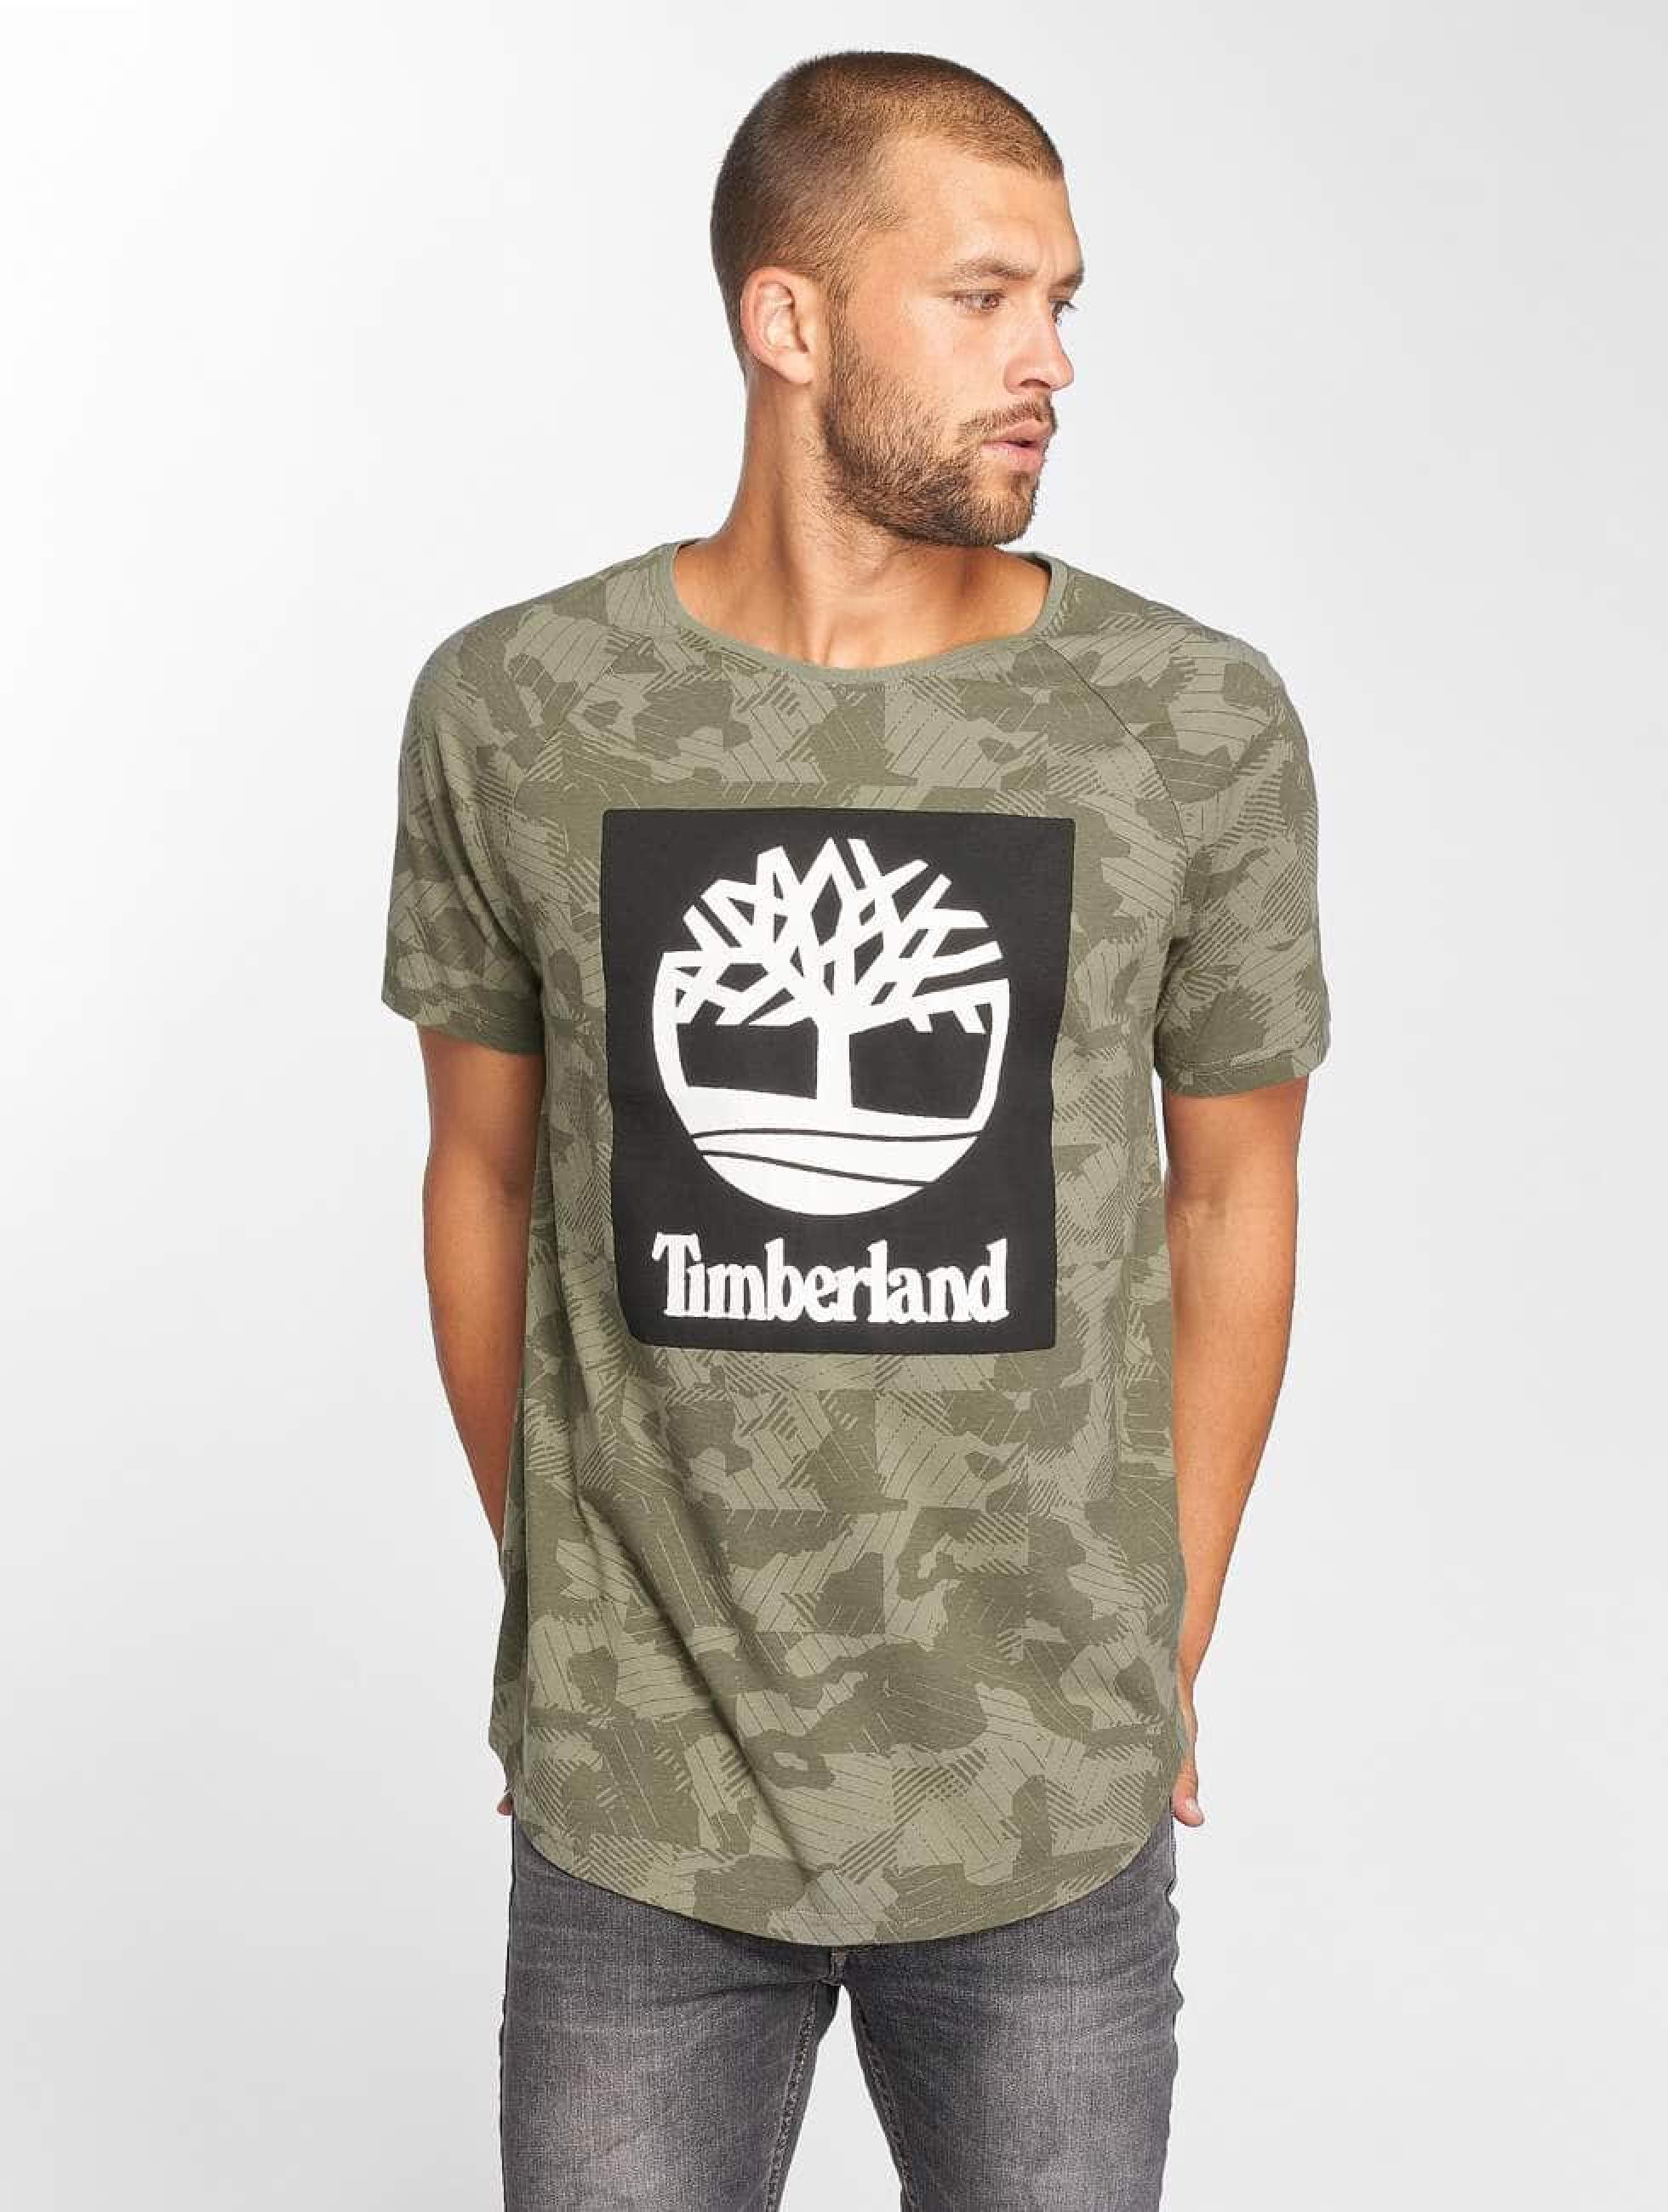 timberland camo logo camouflage homme t shirt 423341. Black Bedroom Furniture Sets. Home Design Ideas